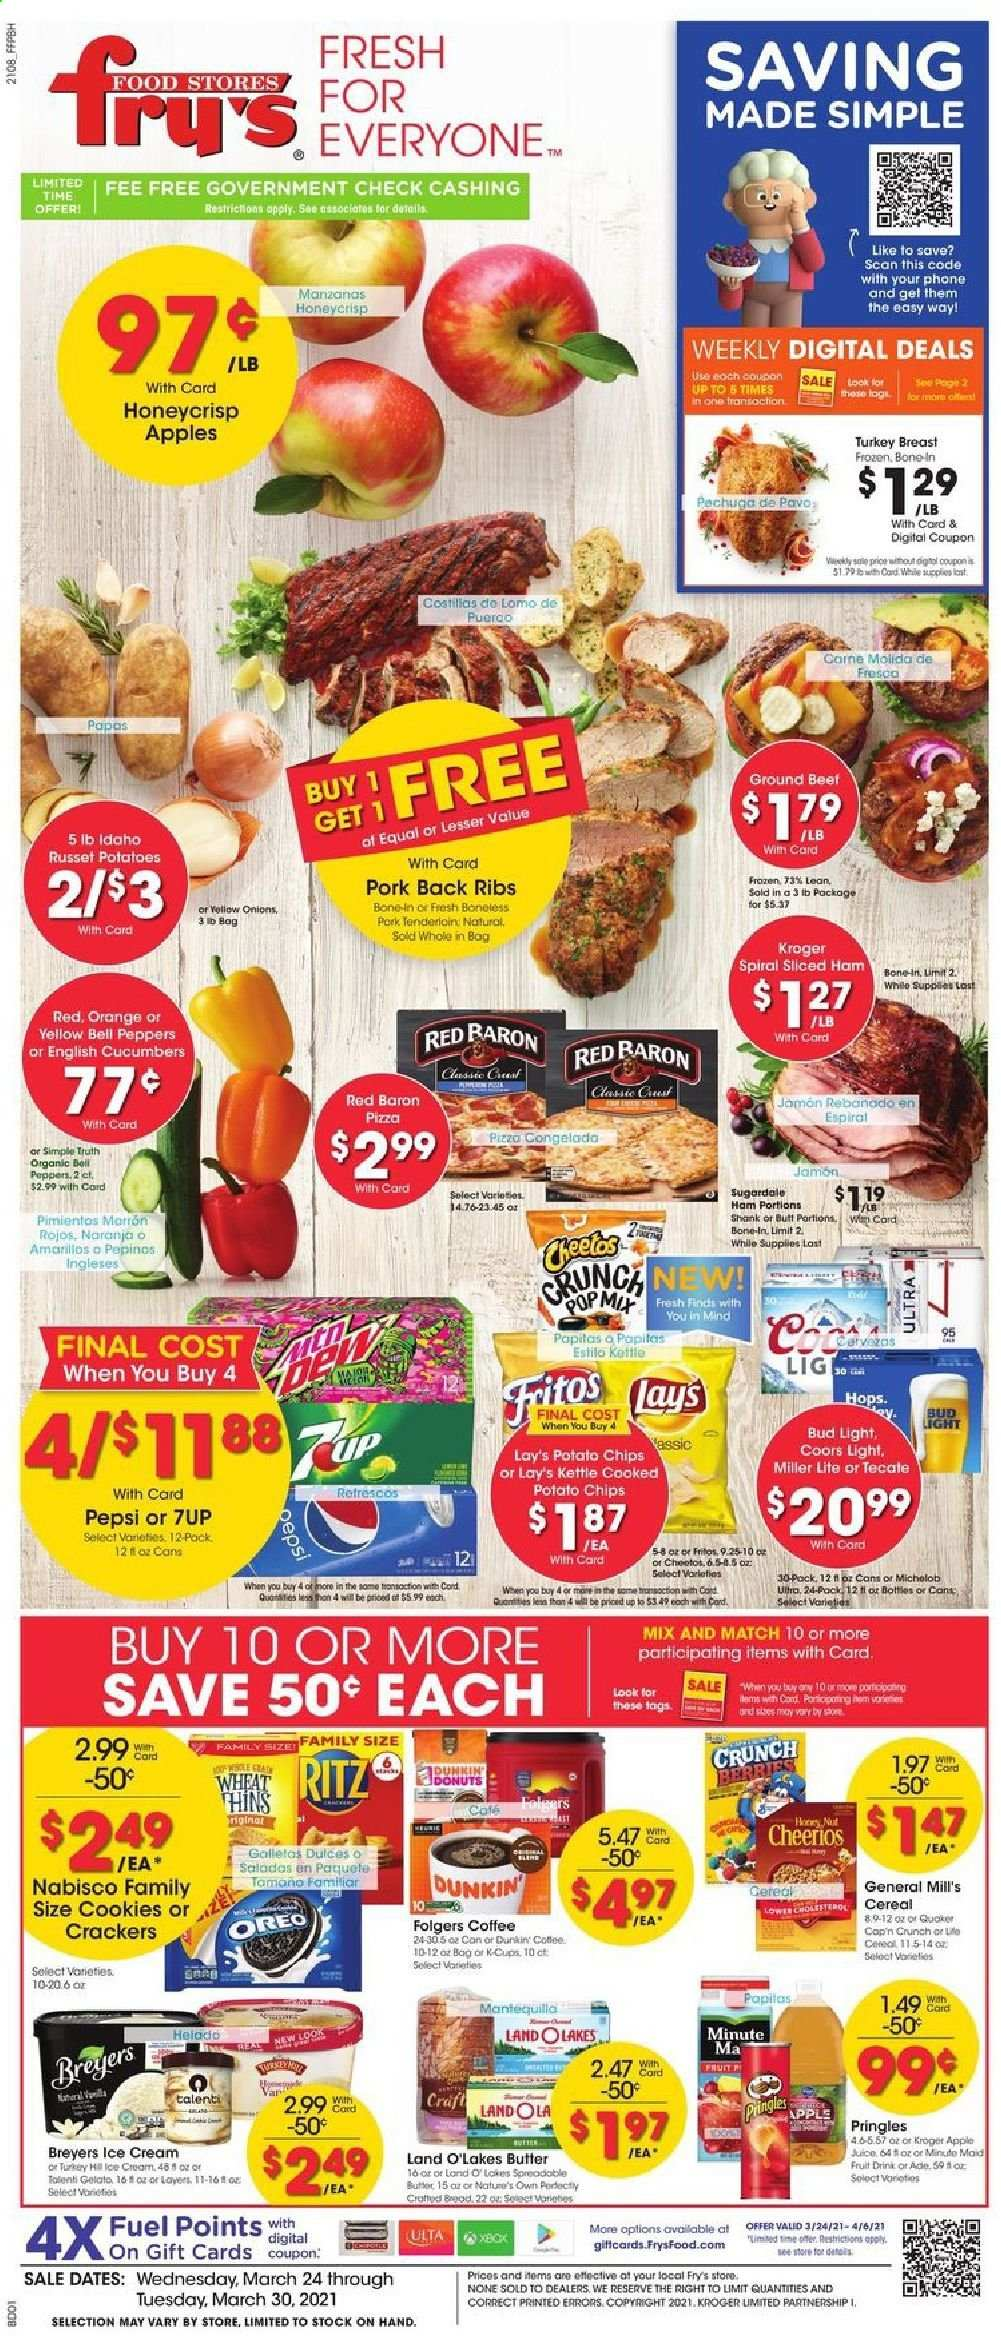 Fry's Flyer - 03.24.2021 - 03.30.2021 - Sales products - donut, apples, orange, pizza, ham, Oreo, butter, ice cream, Talenti Gelato, bell peppers, Red Baron, cookies, crackers, RITZ, potato chips, Pringles, Cheetos, Lay's, cucumbers, cereals, Fritos, Cheerios, Cap'n Crunch, Pepsi, fruit drink, 7UP, coffee, Folgers, beer, Miller Lite, Coors, Bud Light, turkey breast, turkey meat, beef meat, ground beef, pork meat, pork back ribs, Crest, Nature's Own. Page 1.